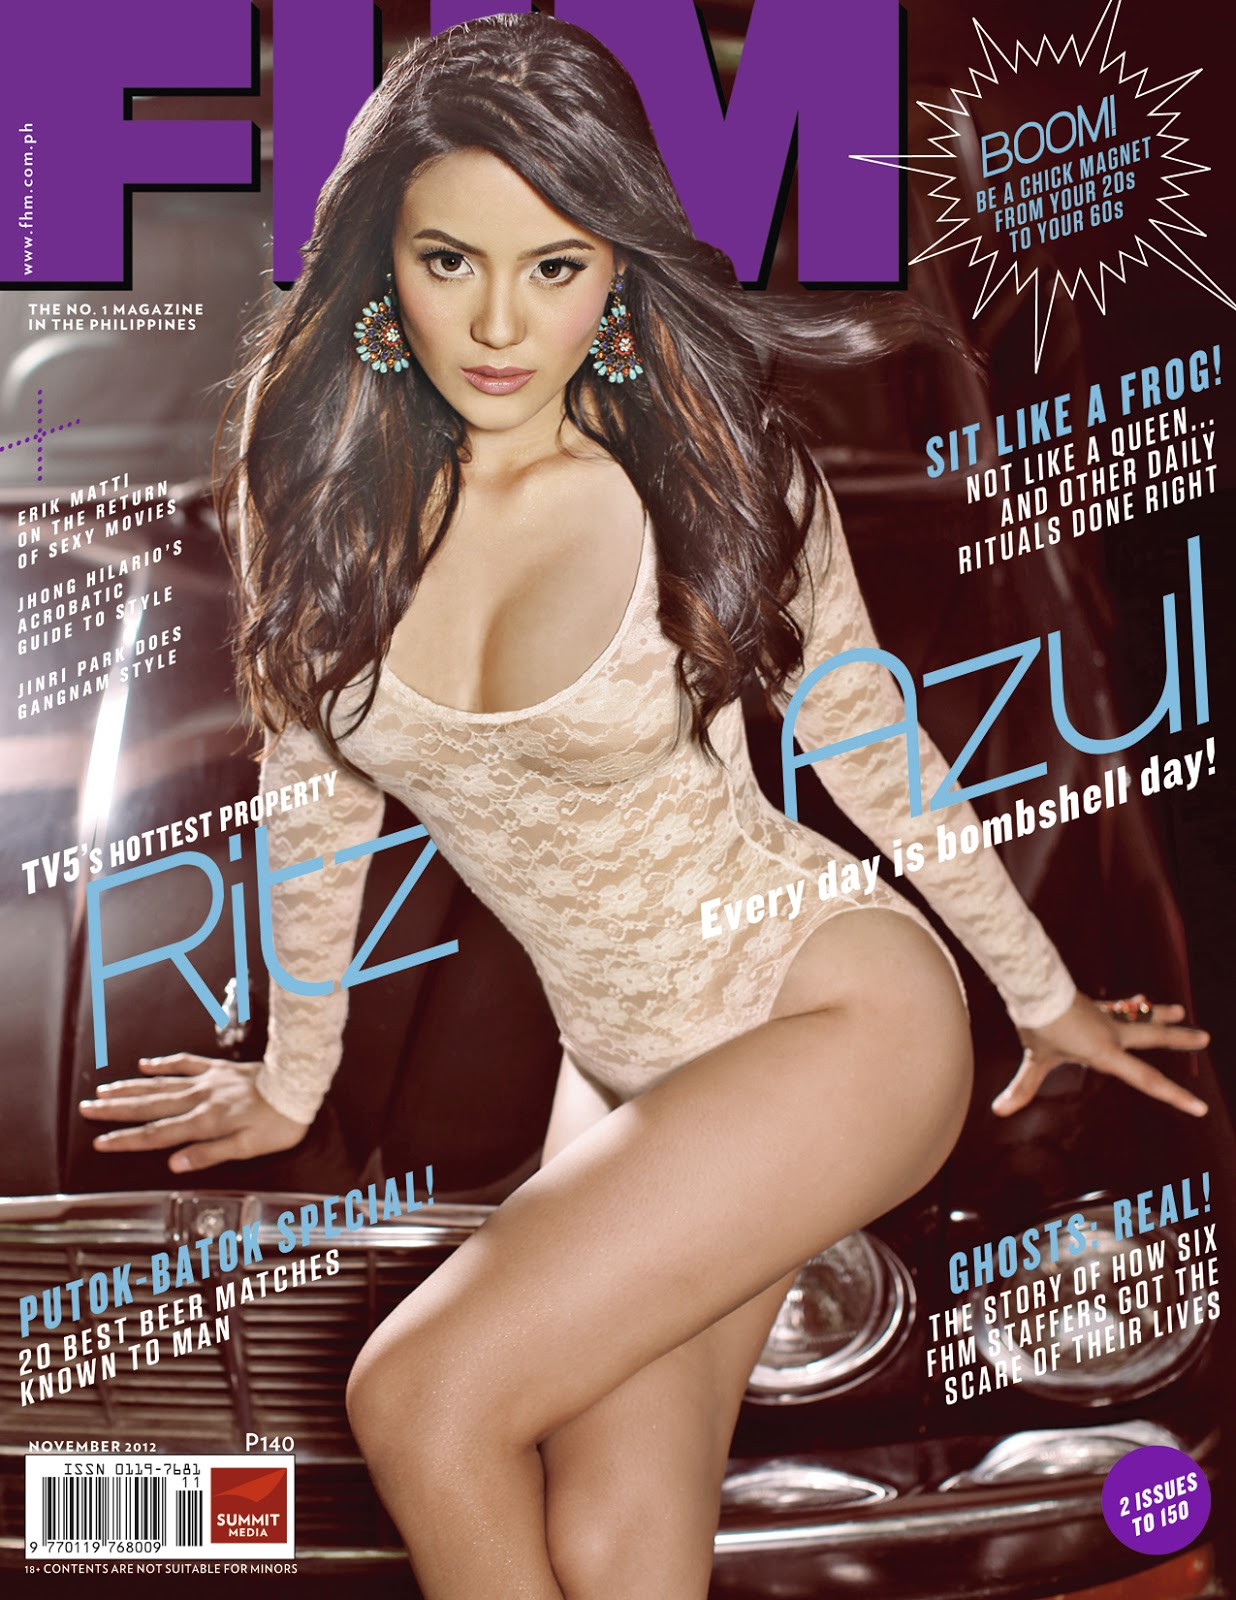 Ritz Azul sizzles as FHM Philippines' November cover girl | THE WEB ...